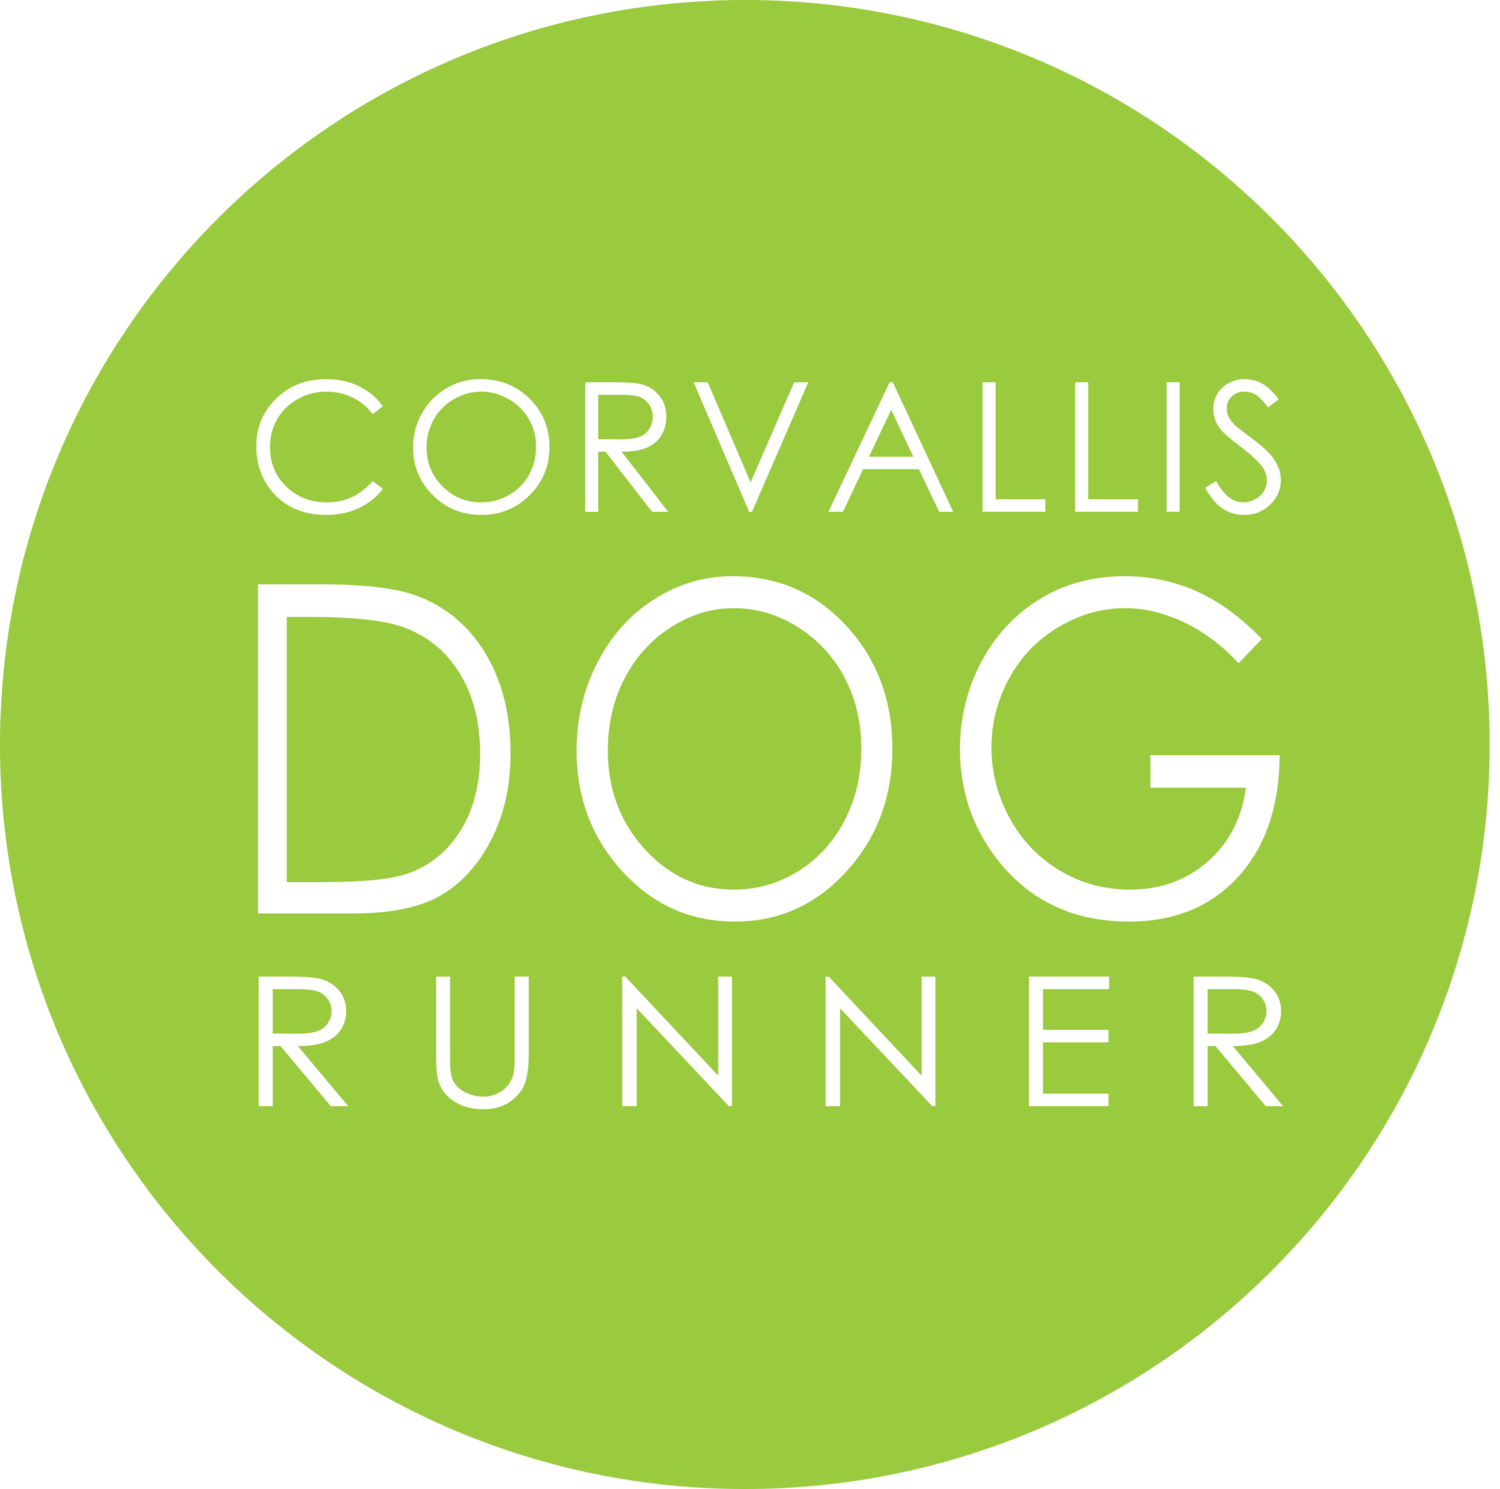 Corvallis Dog Runner